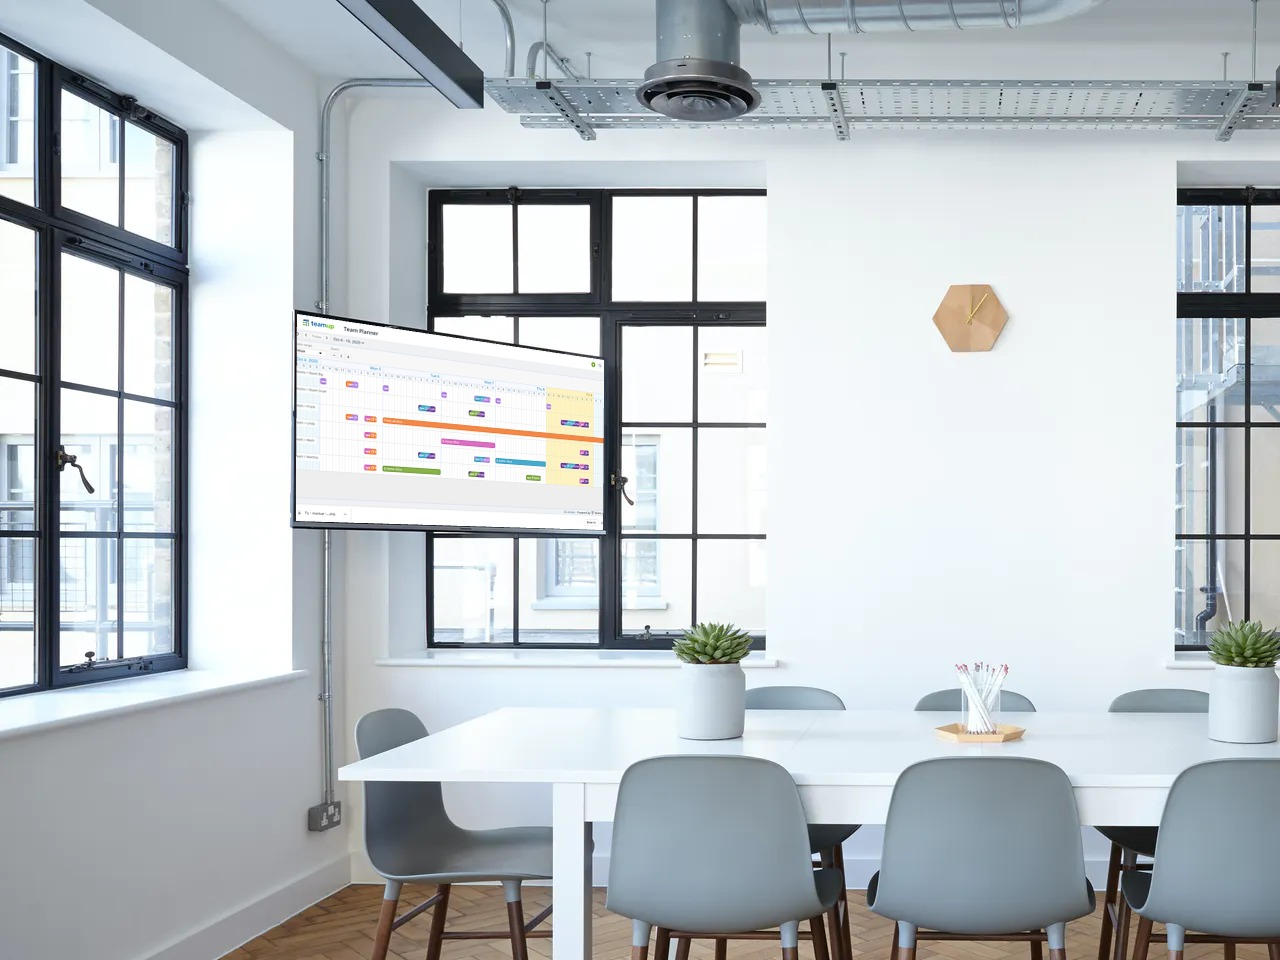 Create a large calendar display for your office